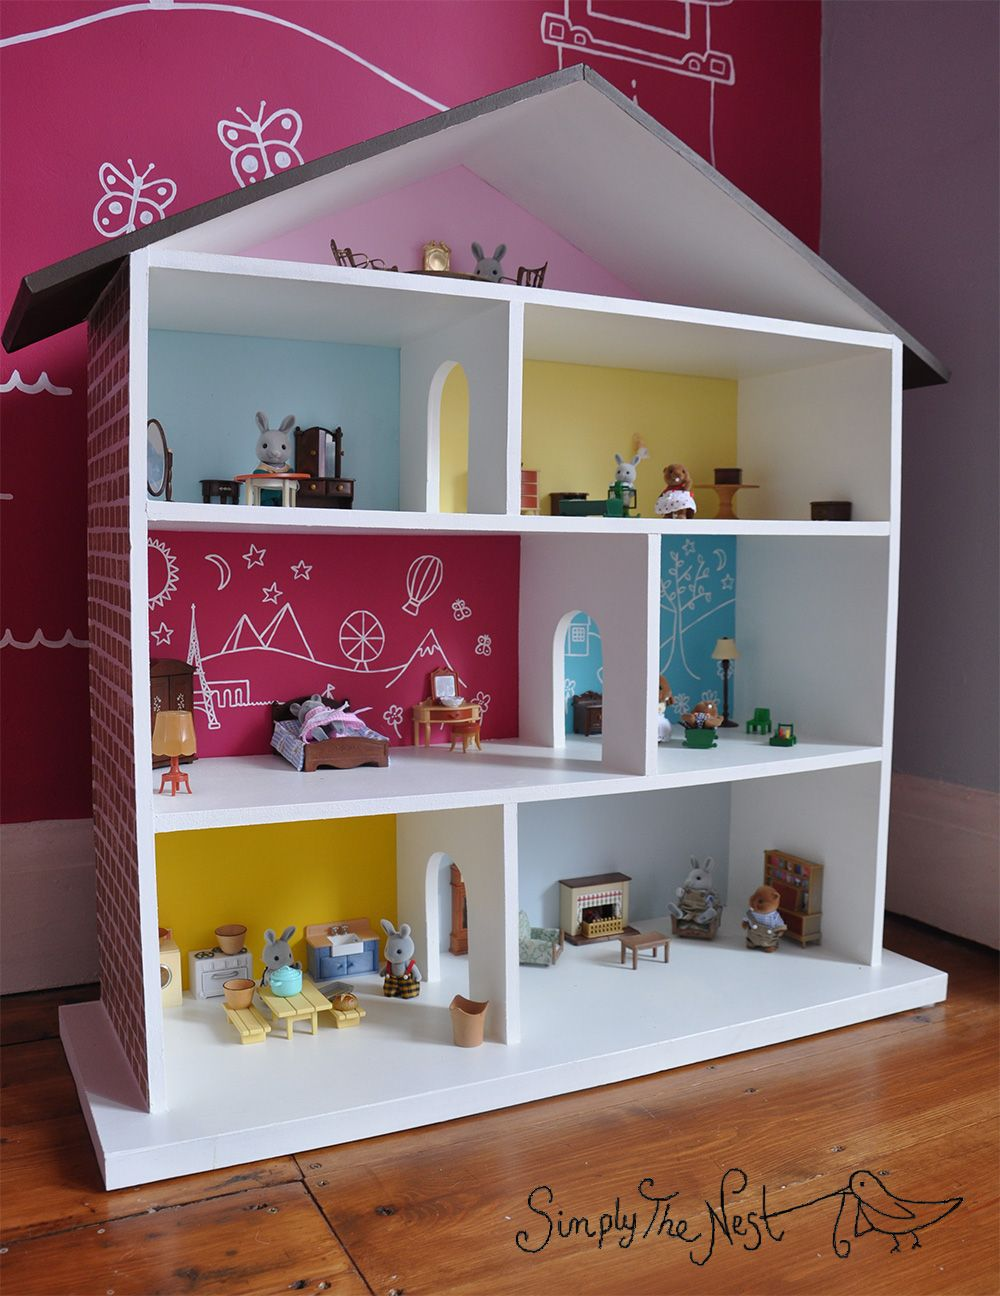 A DIY dollhouse project by Simply The Nest a UK